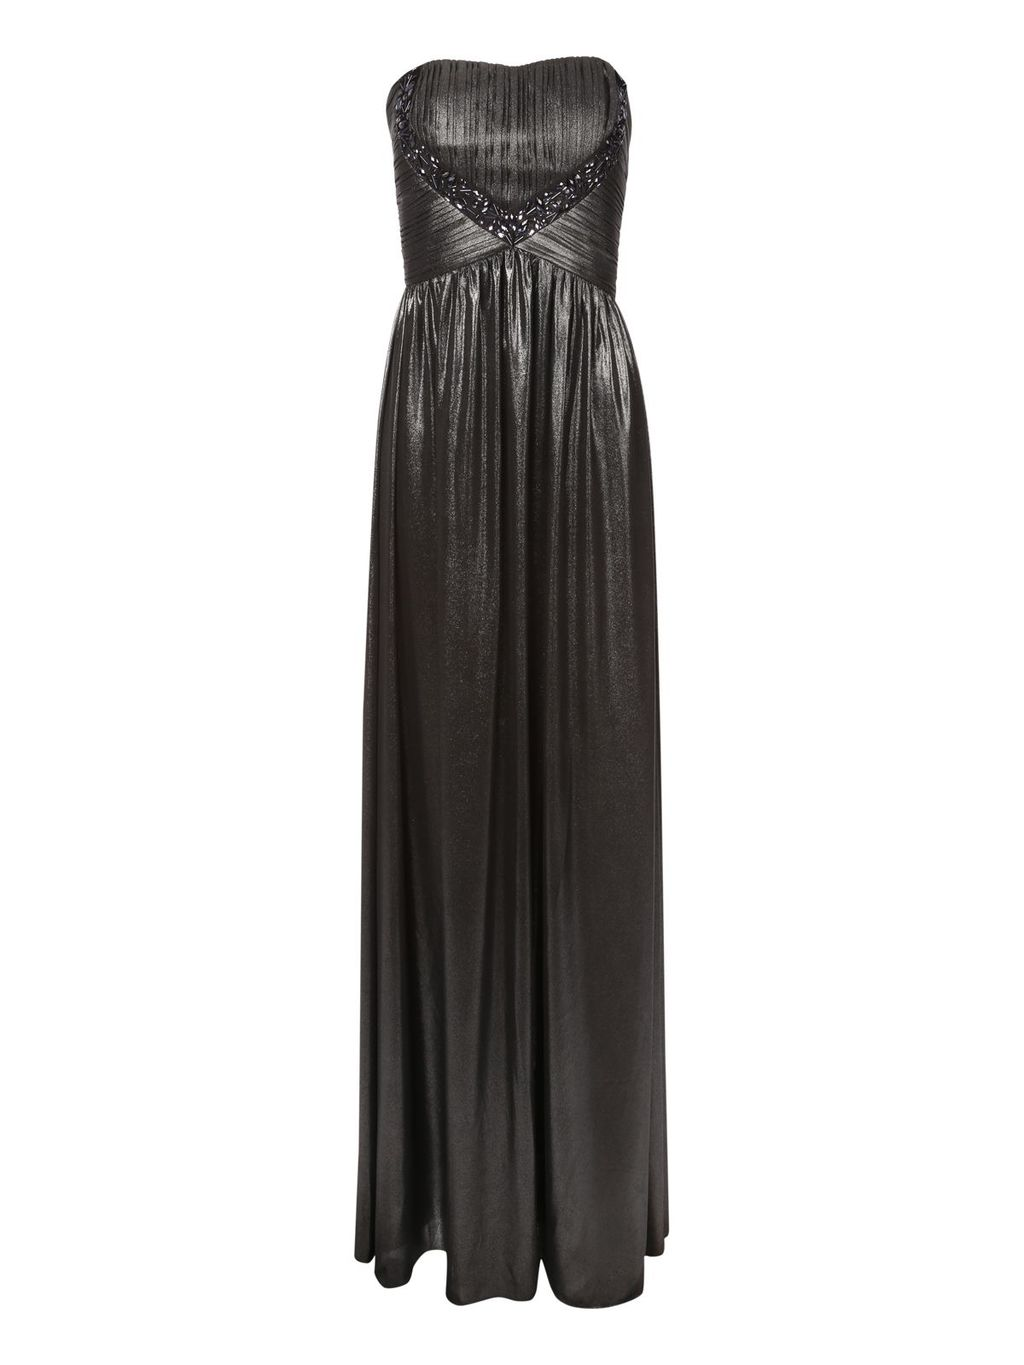 Metallic Embellished Maxi Dress, Black - neckline: strapless (straight/sweetheart); pattern: plain; sleeve style: sleeveless; style: maxi dress; length: ankle length; bust detail: added detail/embellishment at bust; predominant colour: black; occasions: evening, occasion; fit: fitted at waist & bust; fibres: polyester/polyamide - 100%; hip detail: soft pleats at hip/draping at hip/flared at hip; sleeve length: sleeveless; texture group: other - light to midweight; embellishment: jewels/stone; season: a/w 2014